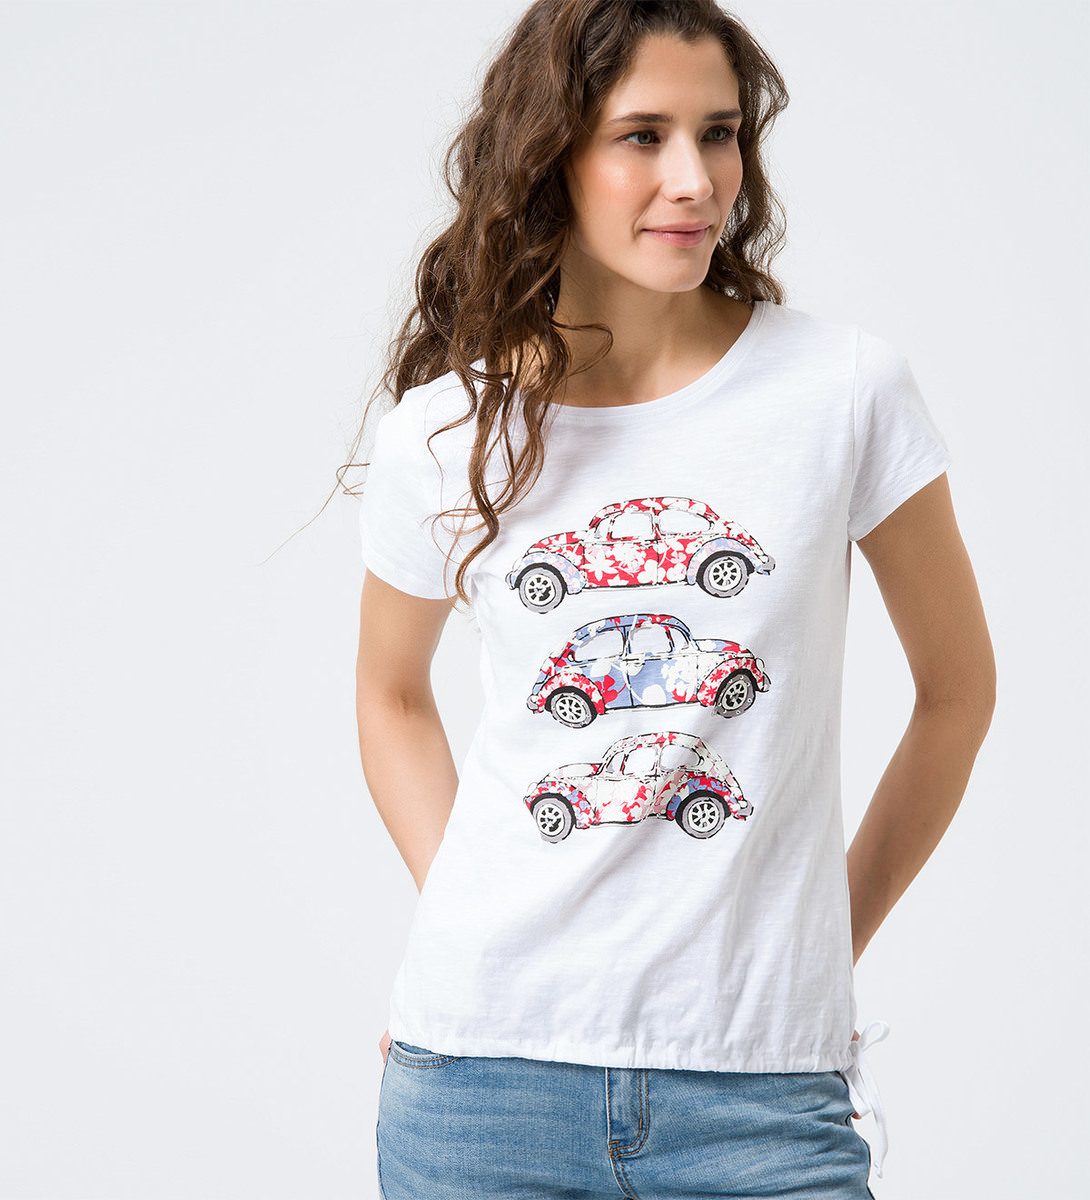 T-Shirt mit Frontprints in white